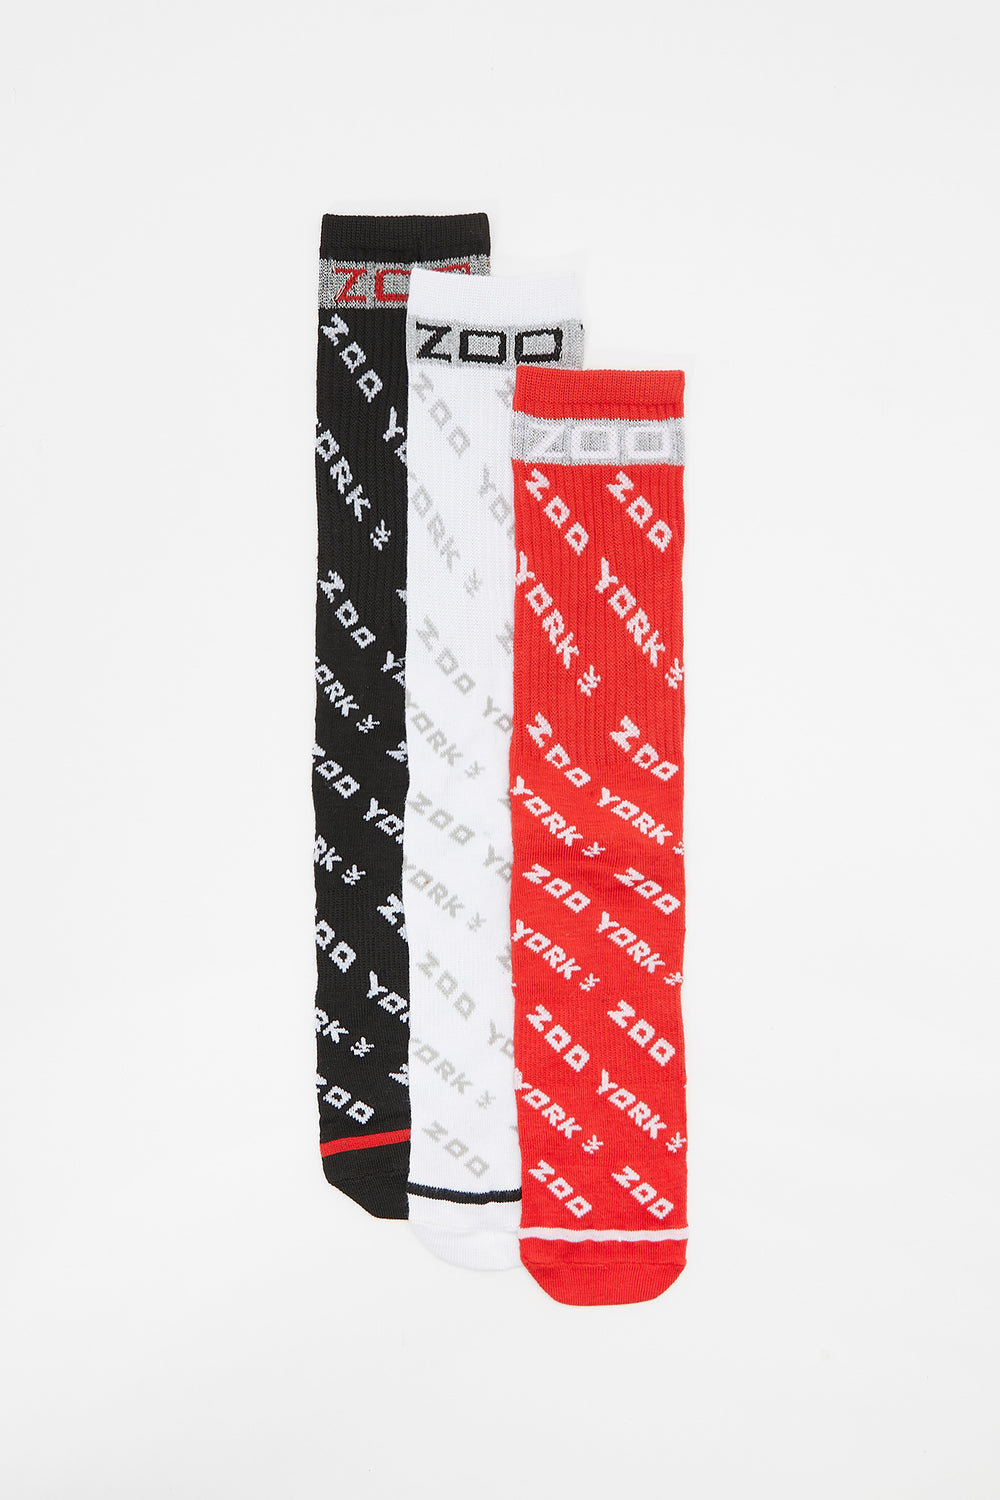 Zoo York Youth Reflective Crew Socks (3-Pack) Multi